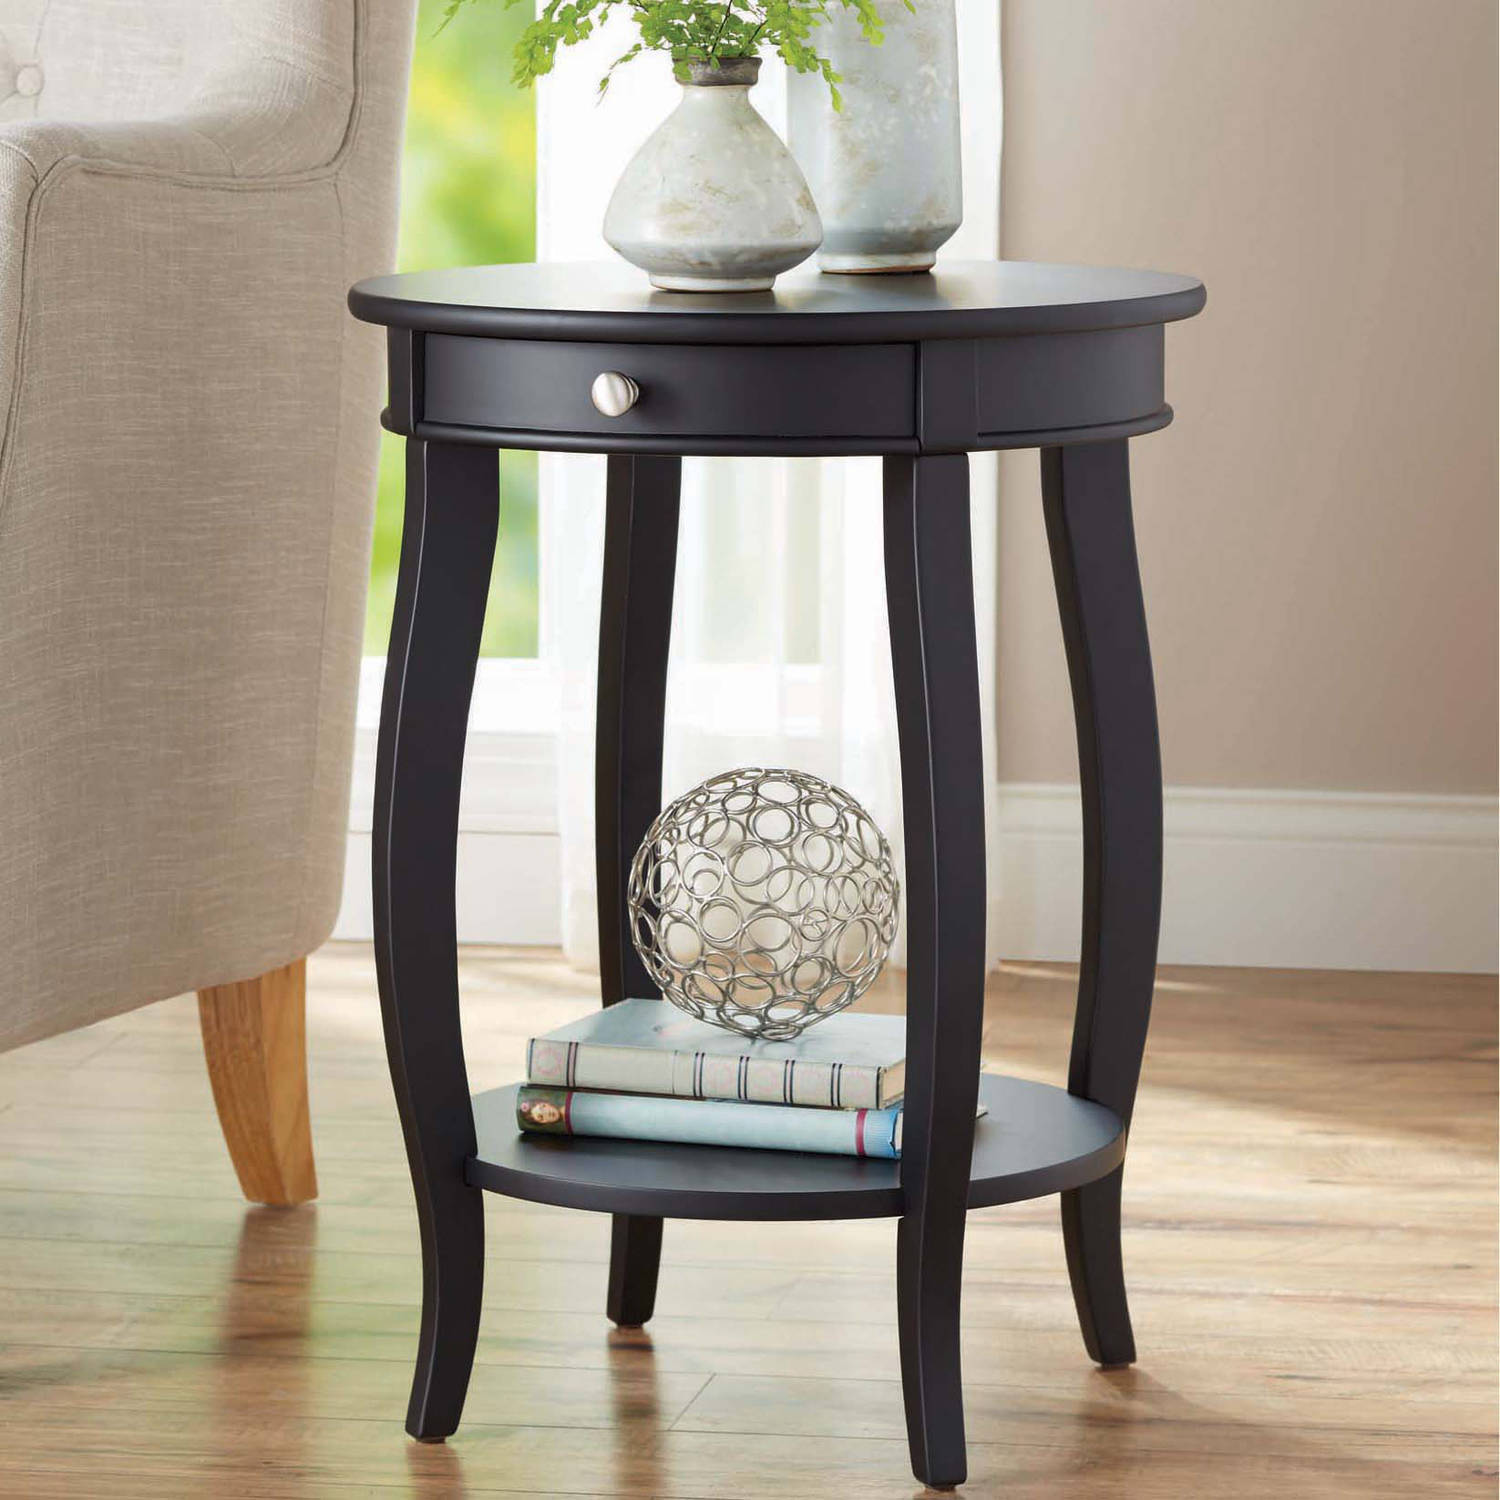 better homes gardens round accent table with drawer multiple small tables furniture colors big lamps blue distressed white and gold nightstand antique glass side black brass